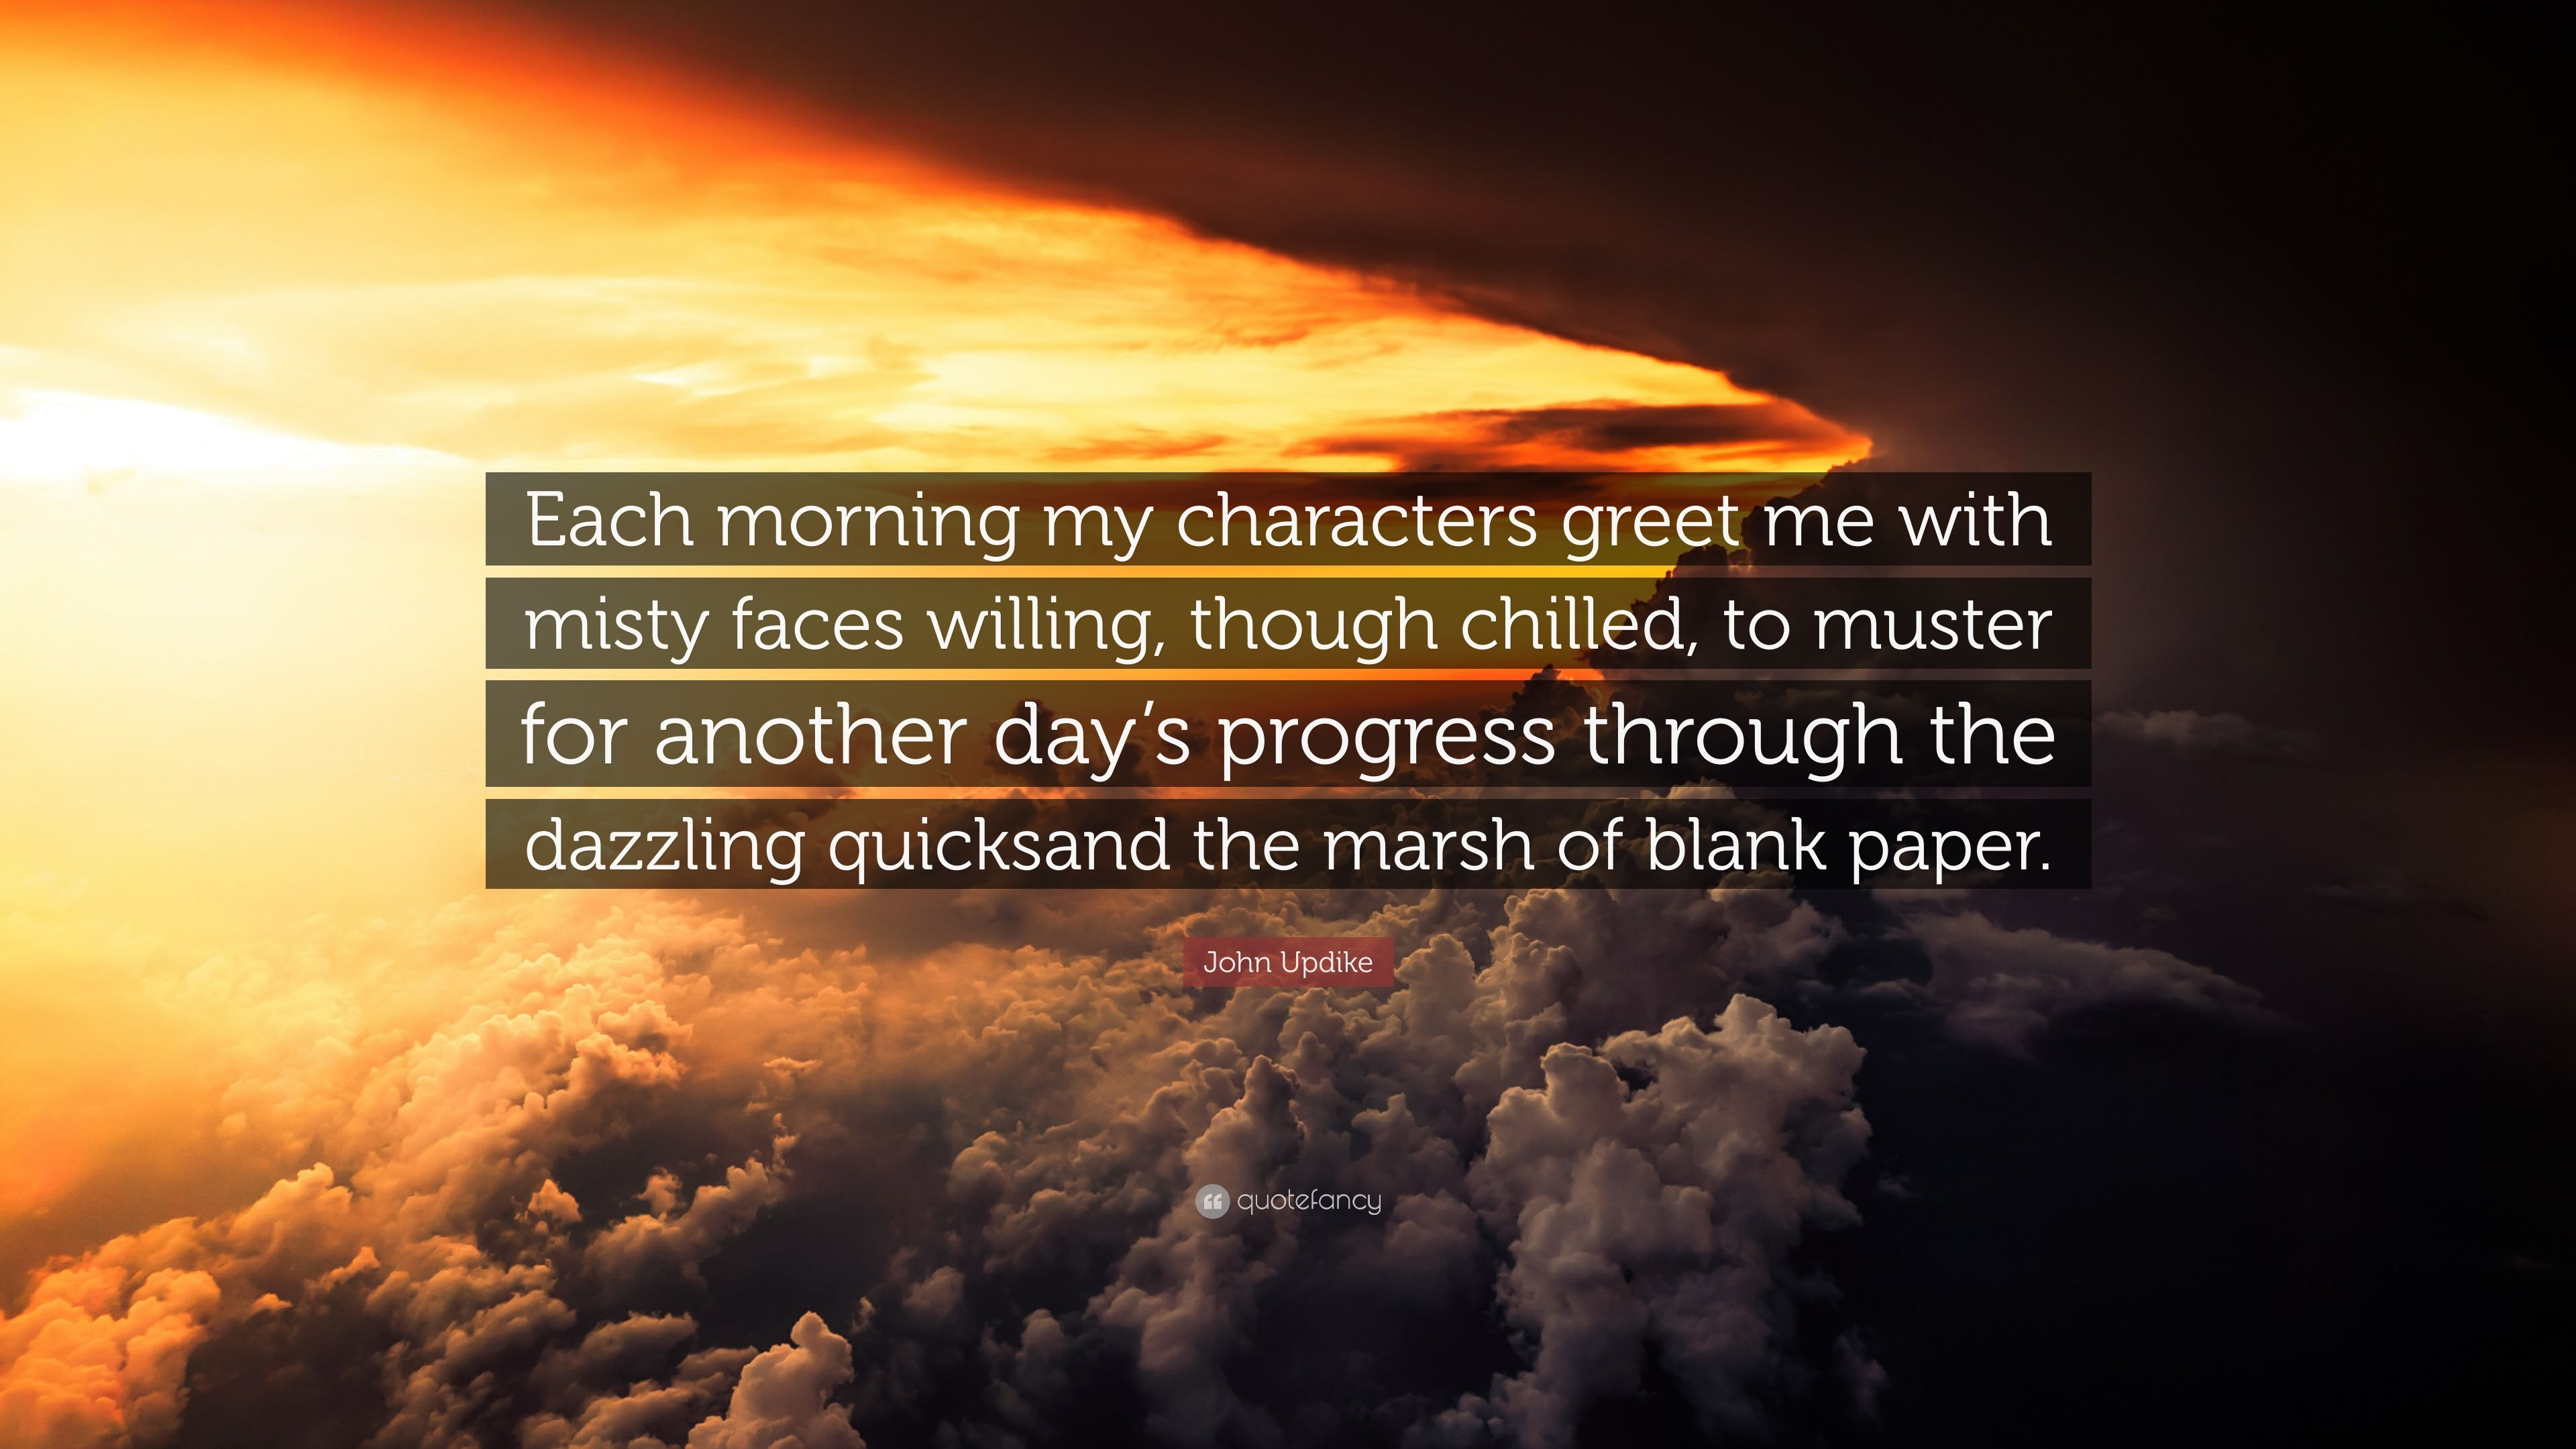 John updike quote each morning my characters greet me with misty john updike quote each morning my characters greet me with misty faces willing m4hsunfo